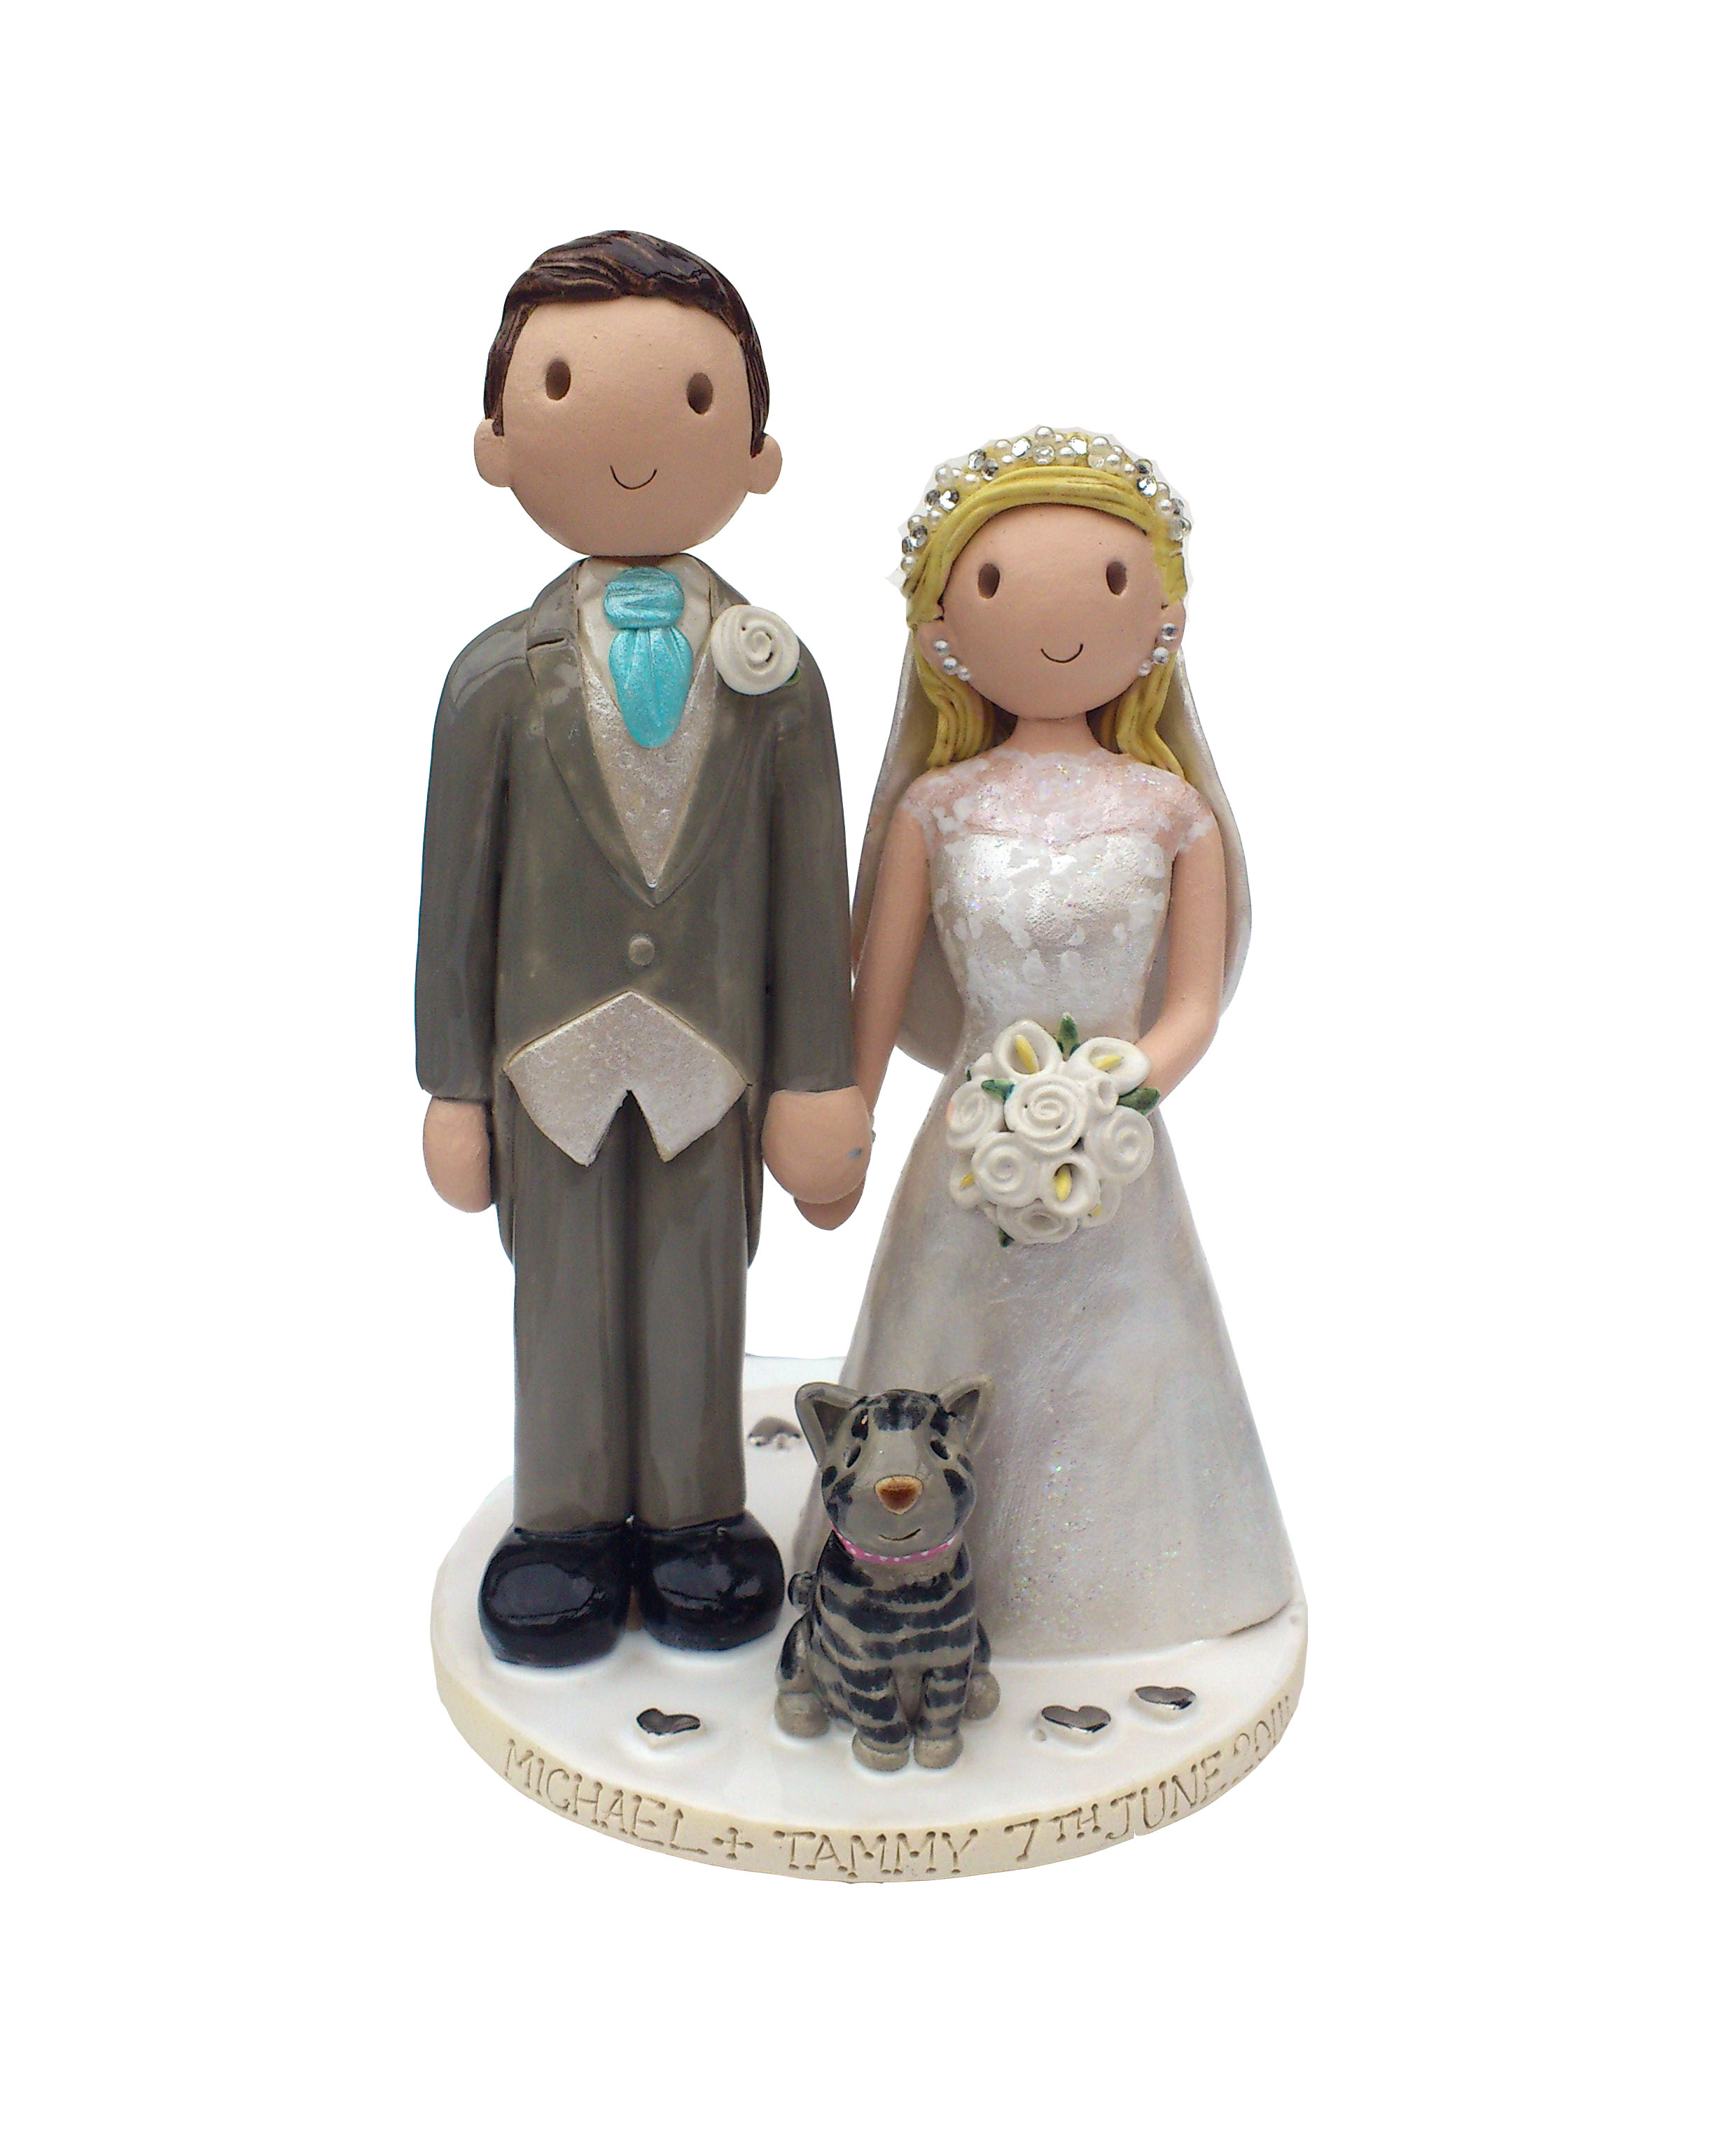 wedding cake toppers colorado springs wedding cake toppers gallery examples of toppers we 26438